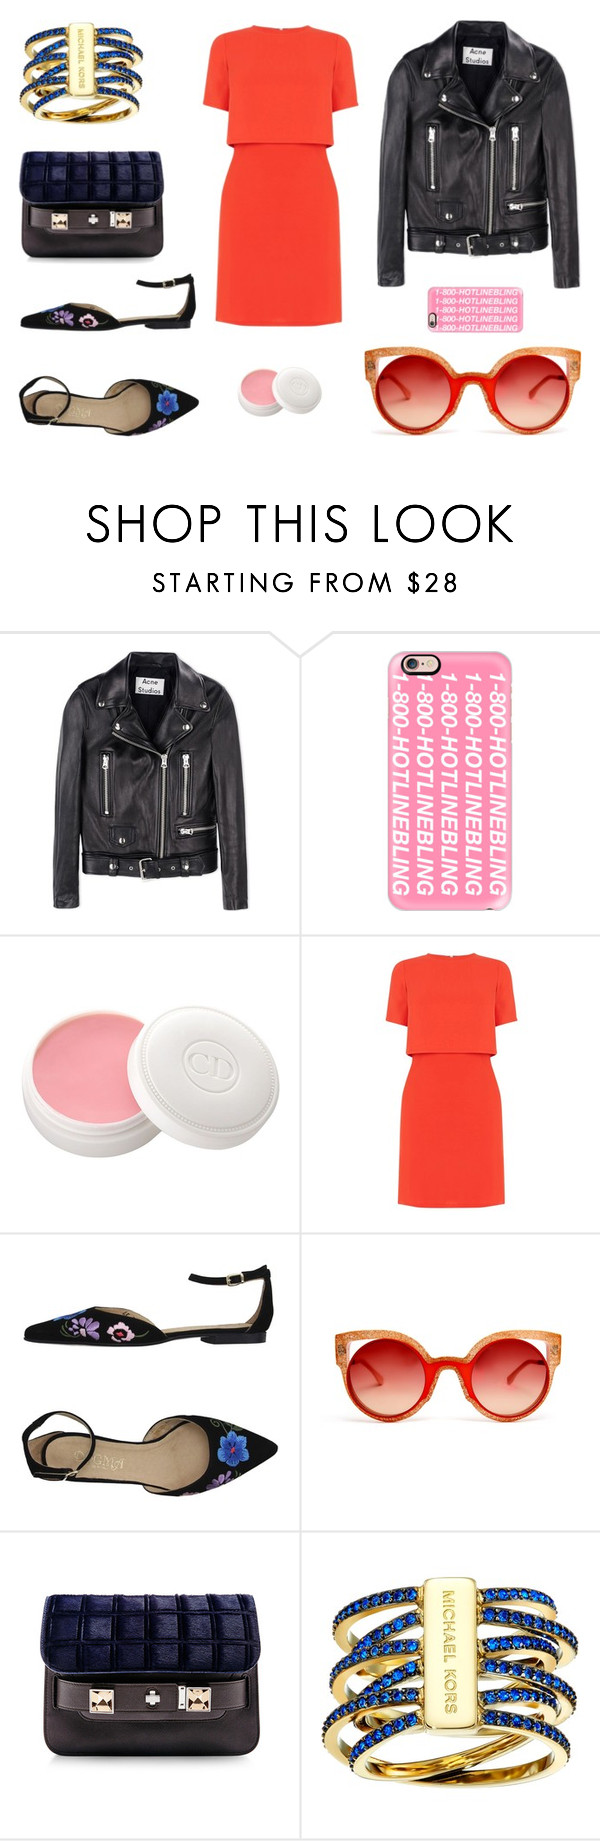 """""""Untitled 59"""" by hm83 ❤ liked on Polyvore featuring Acne Studios, Casetify, Christian Dior, Oasis, Dogma, Fendi and Michael Kors"""